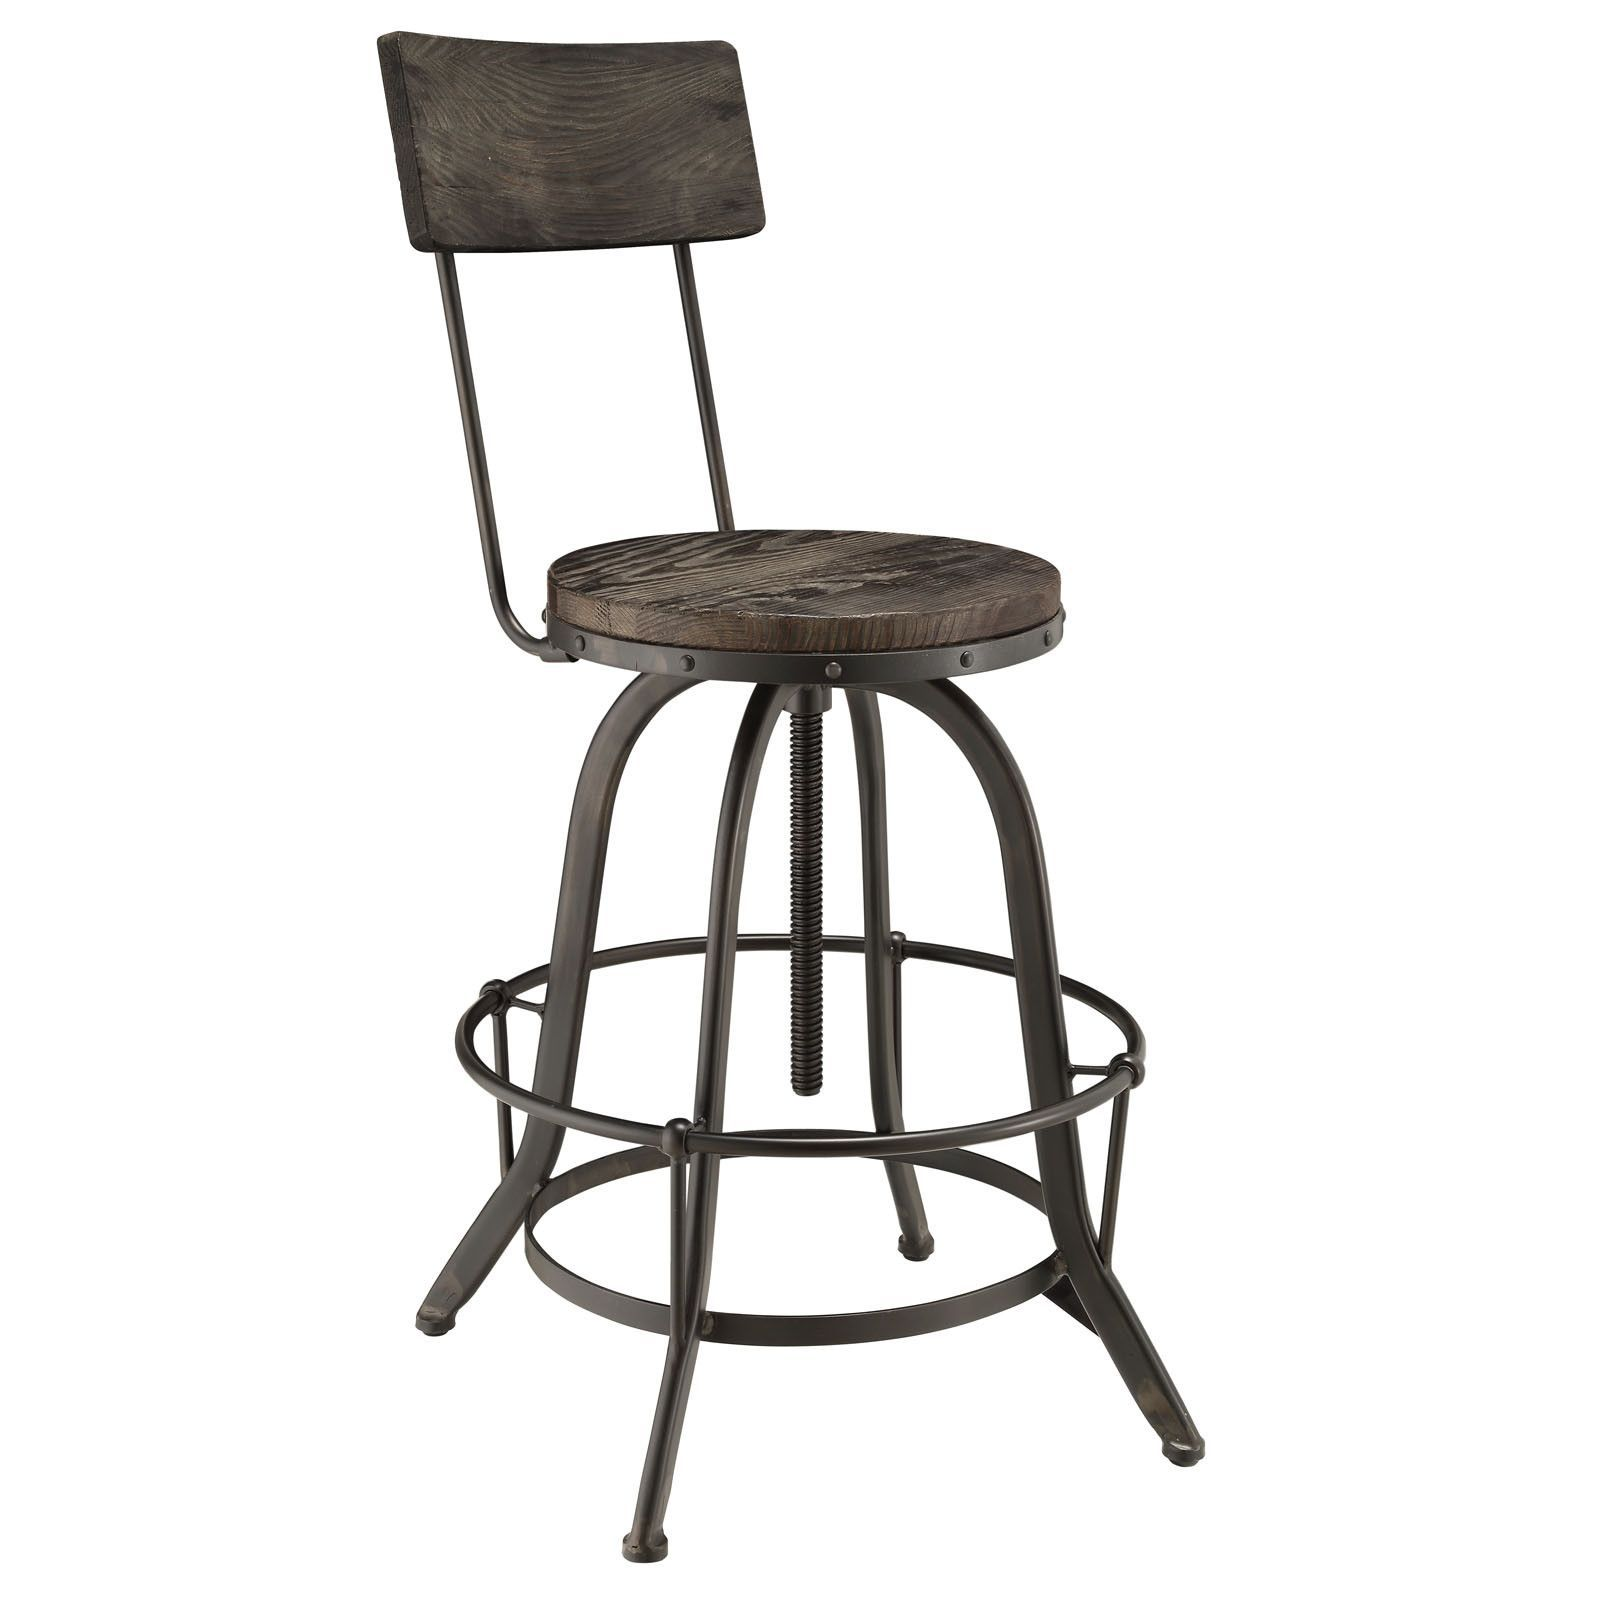 pub of kitchen inch full industrial western steel stainless size chairs stools stool bar